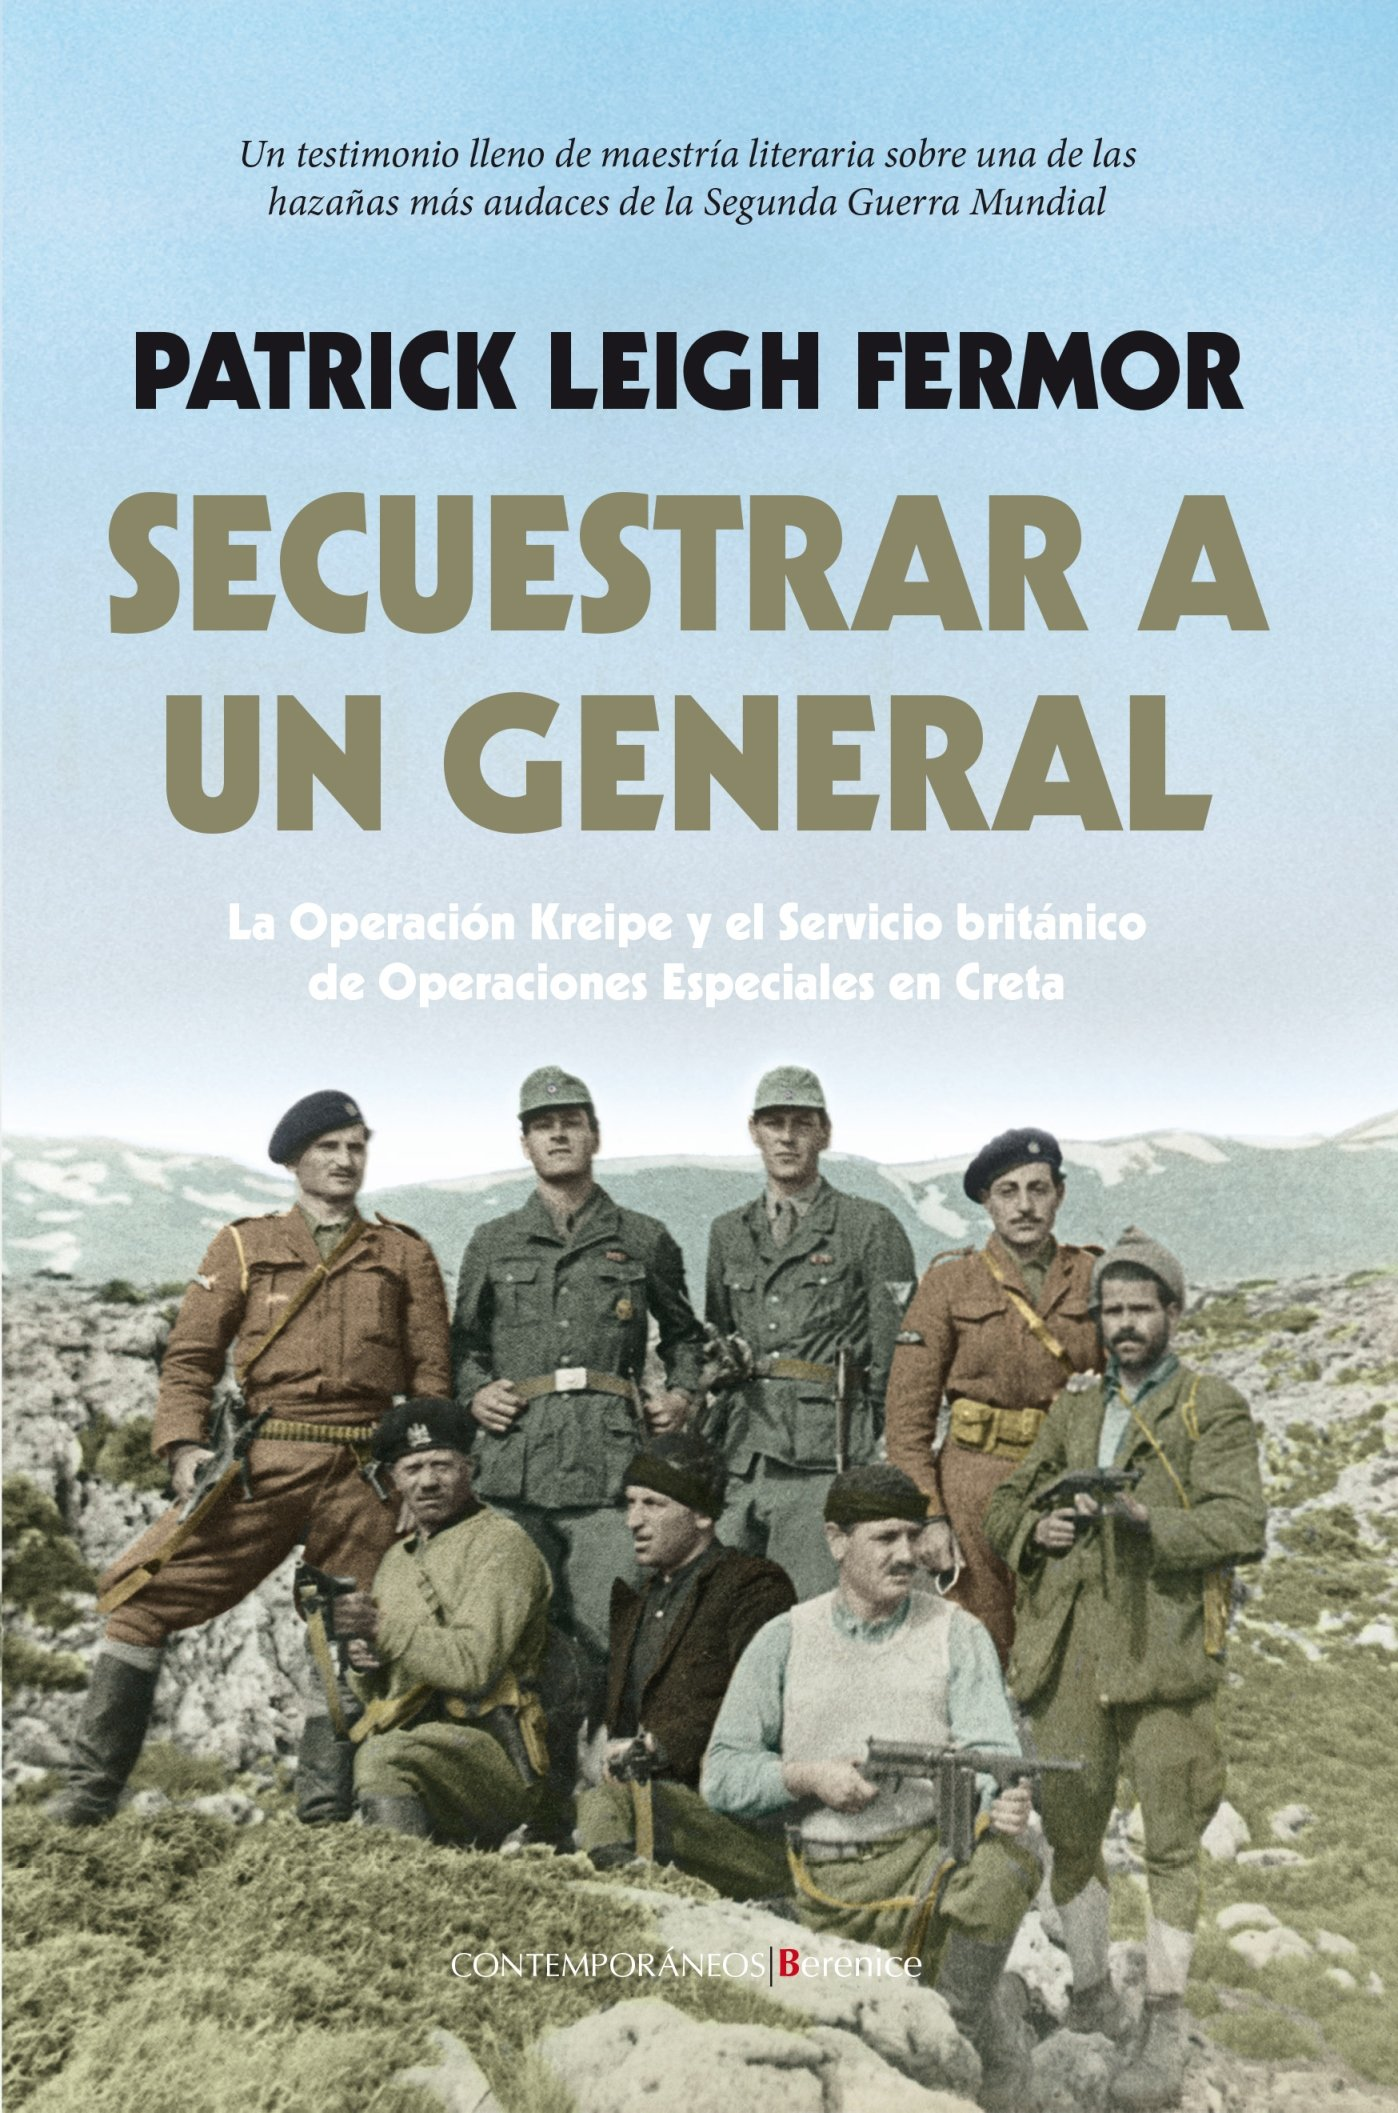 Secuestrar A Un General (Berenice): Amazon.es: Patrick Leigh Fermor: Libros